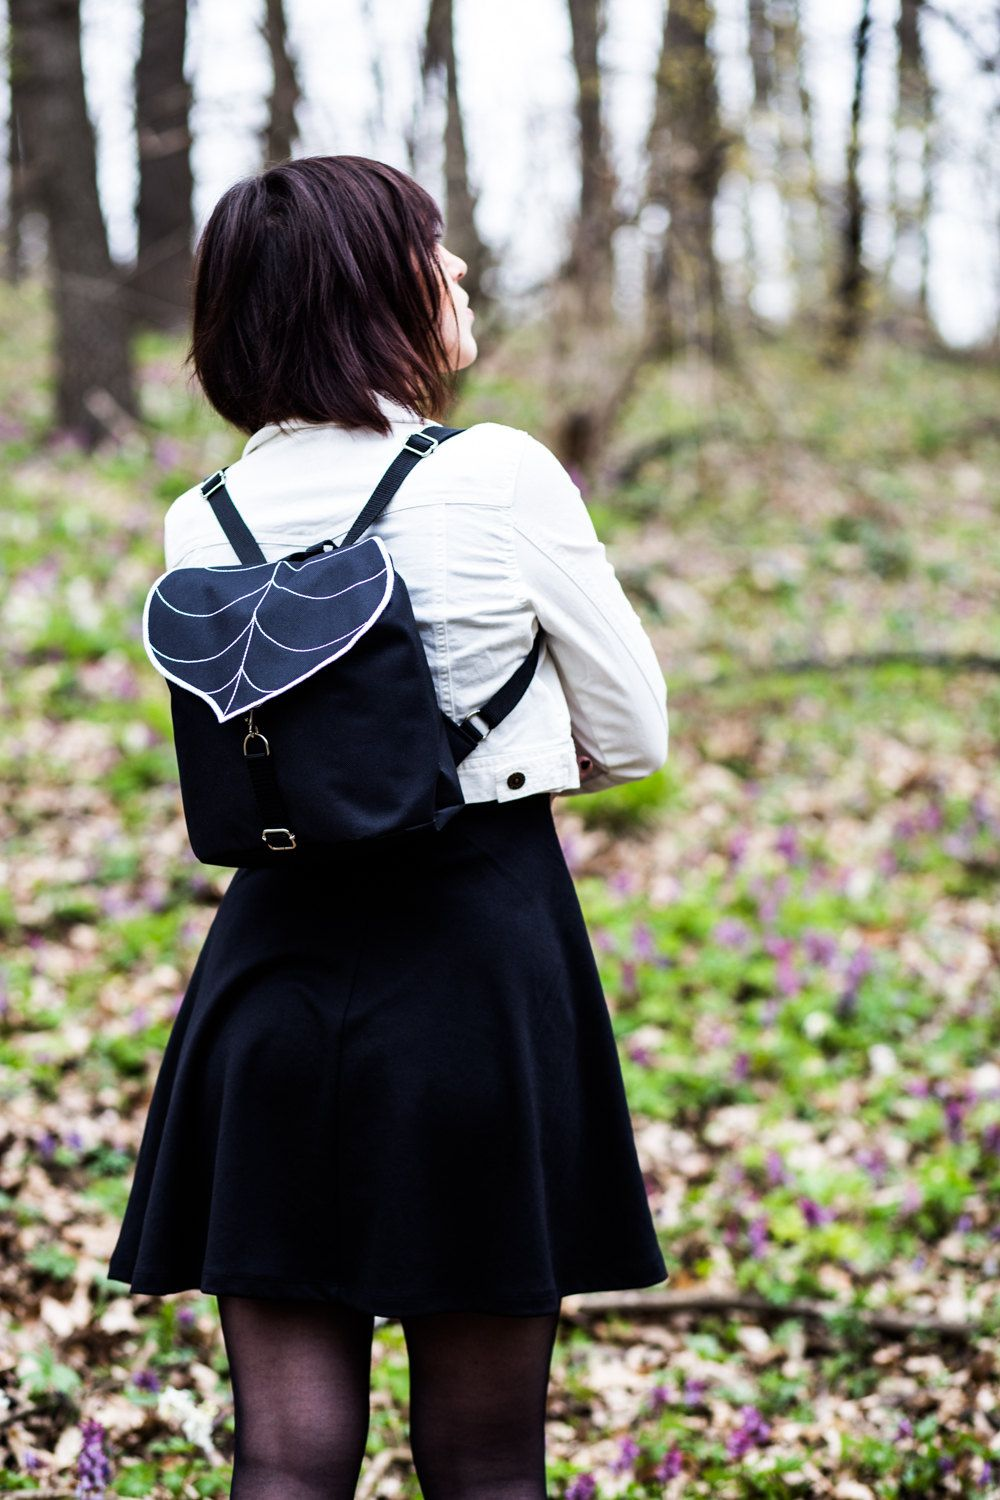 BlackBurgundy Mini Backpack for Girls with a Cute